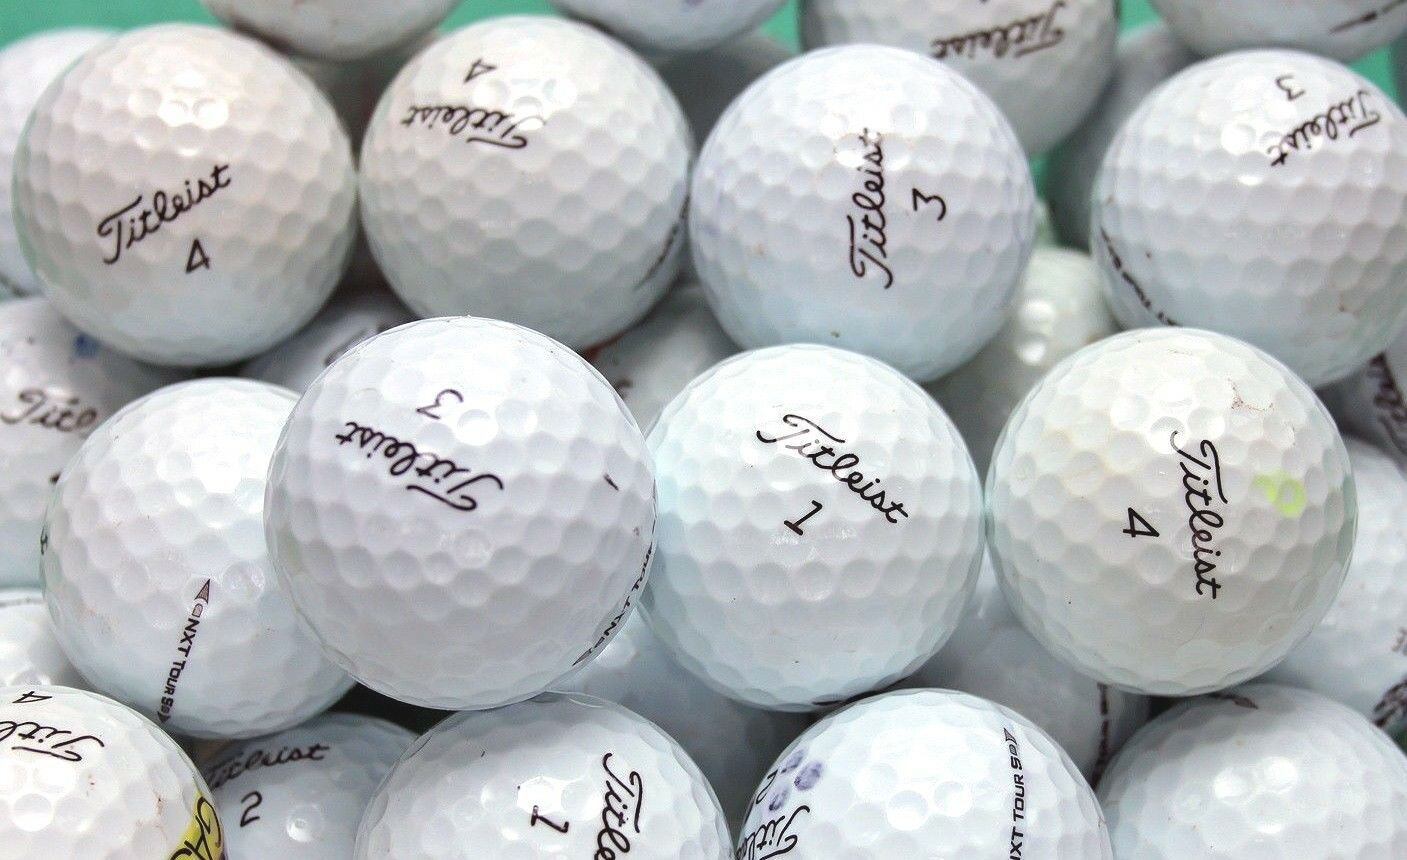 Buy Titleist Nxt Tour Golf Balls